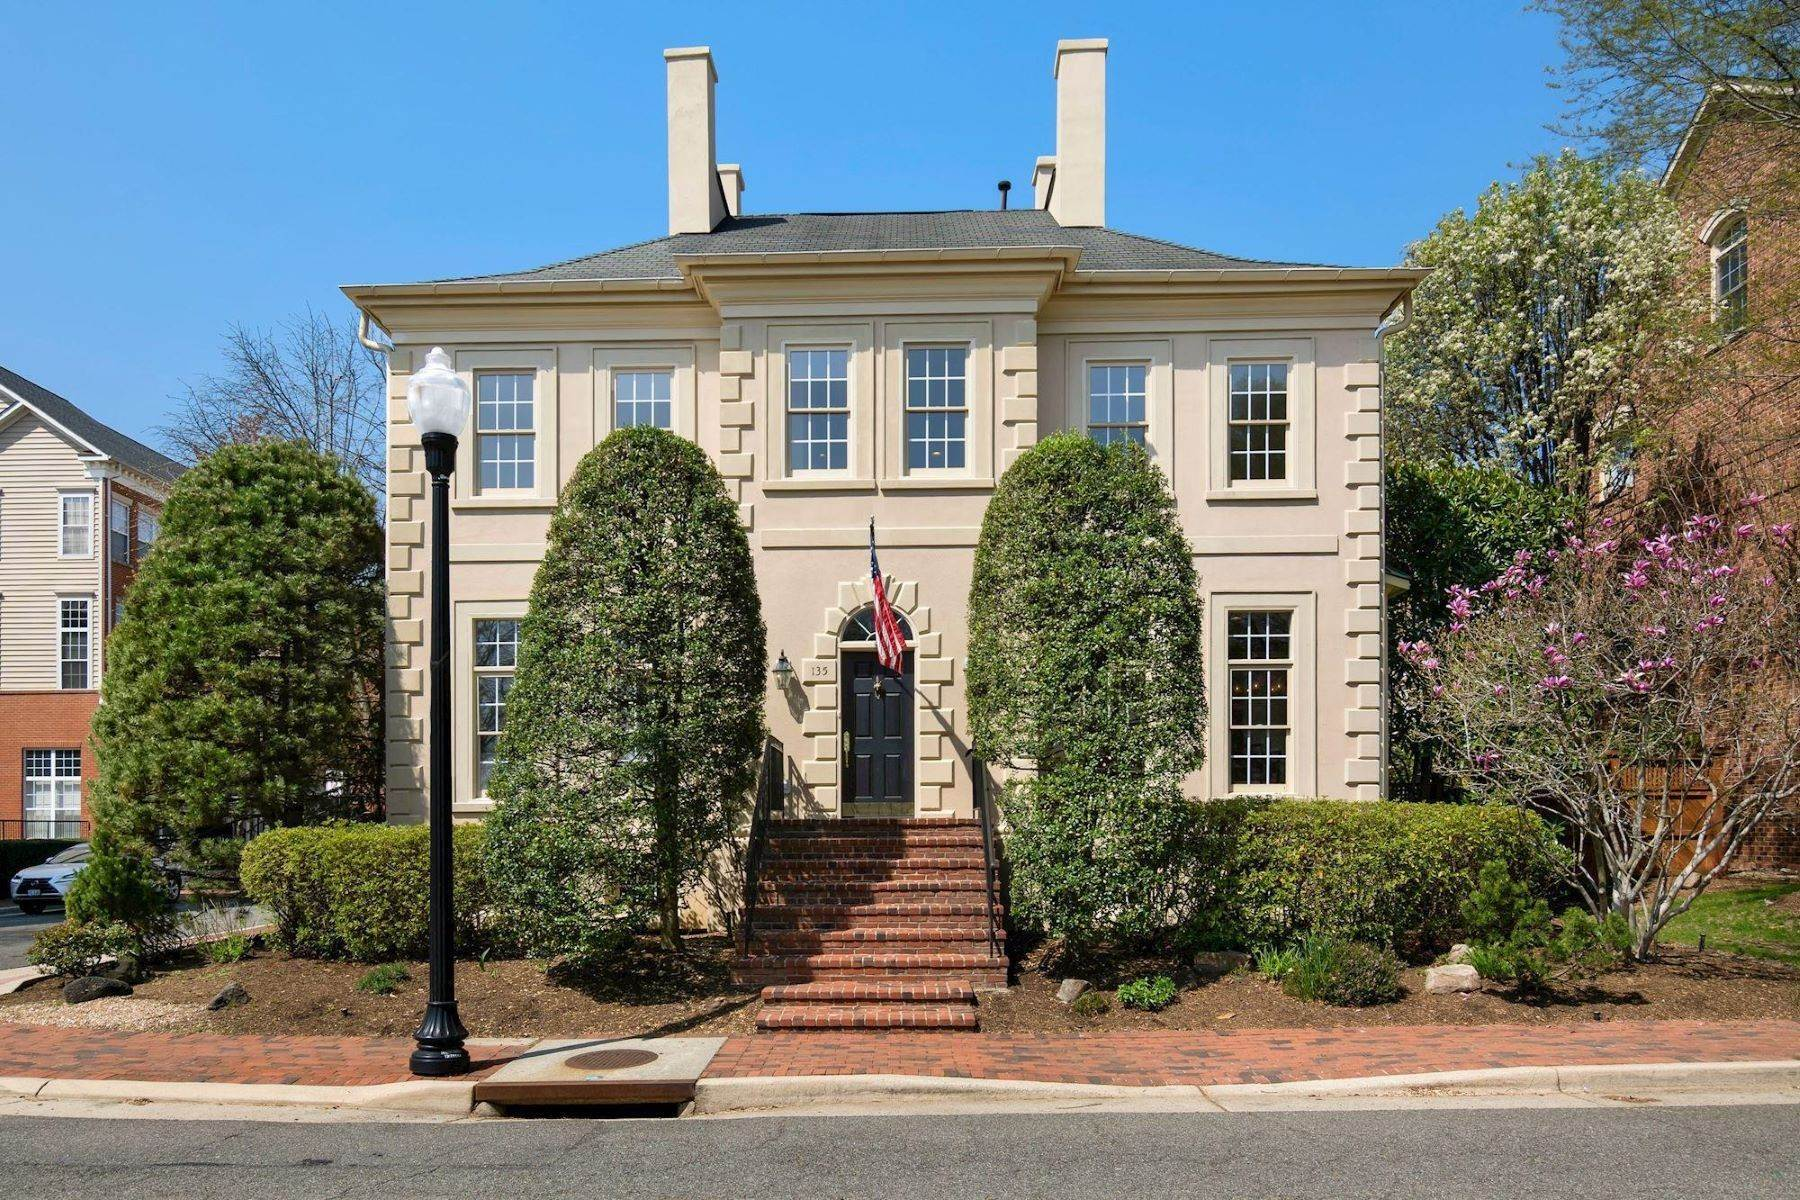 Property for Sale at Alexandria, Virginia, 22304 United States